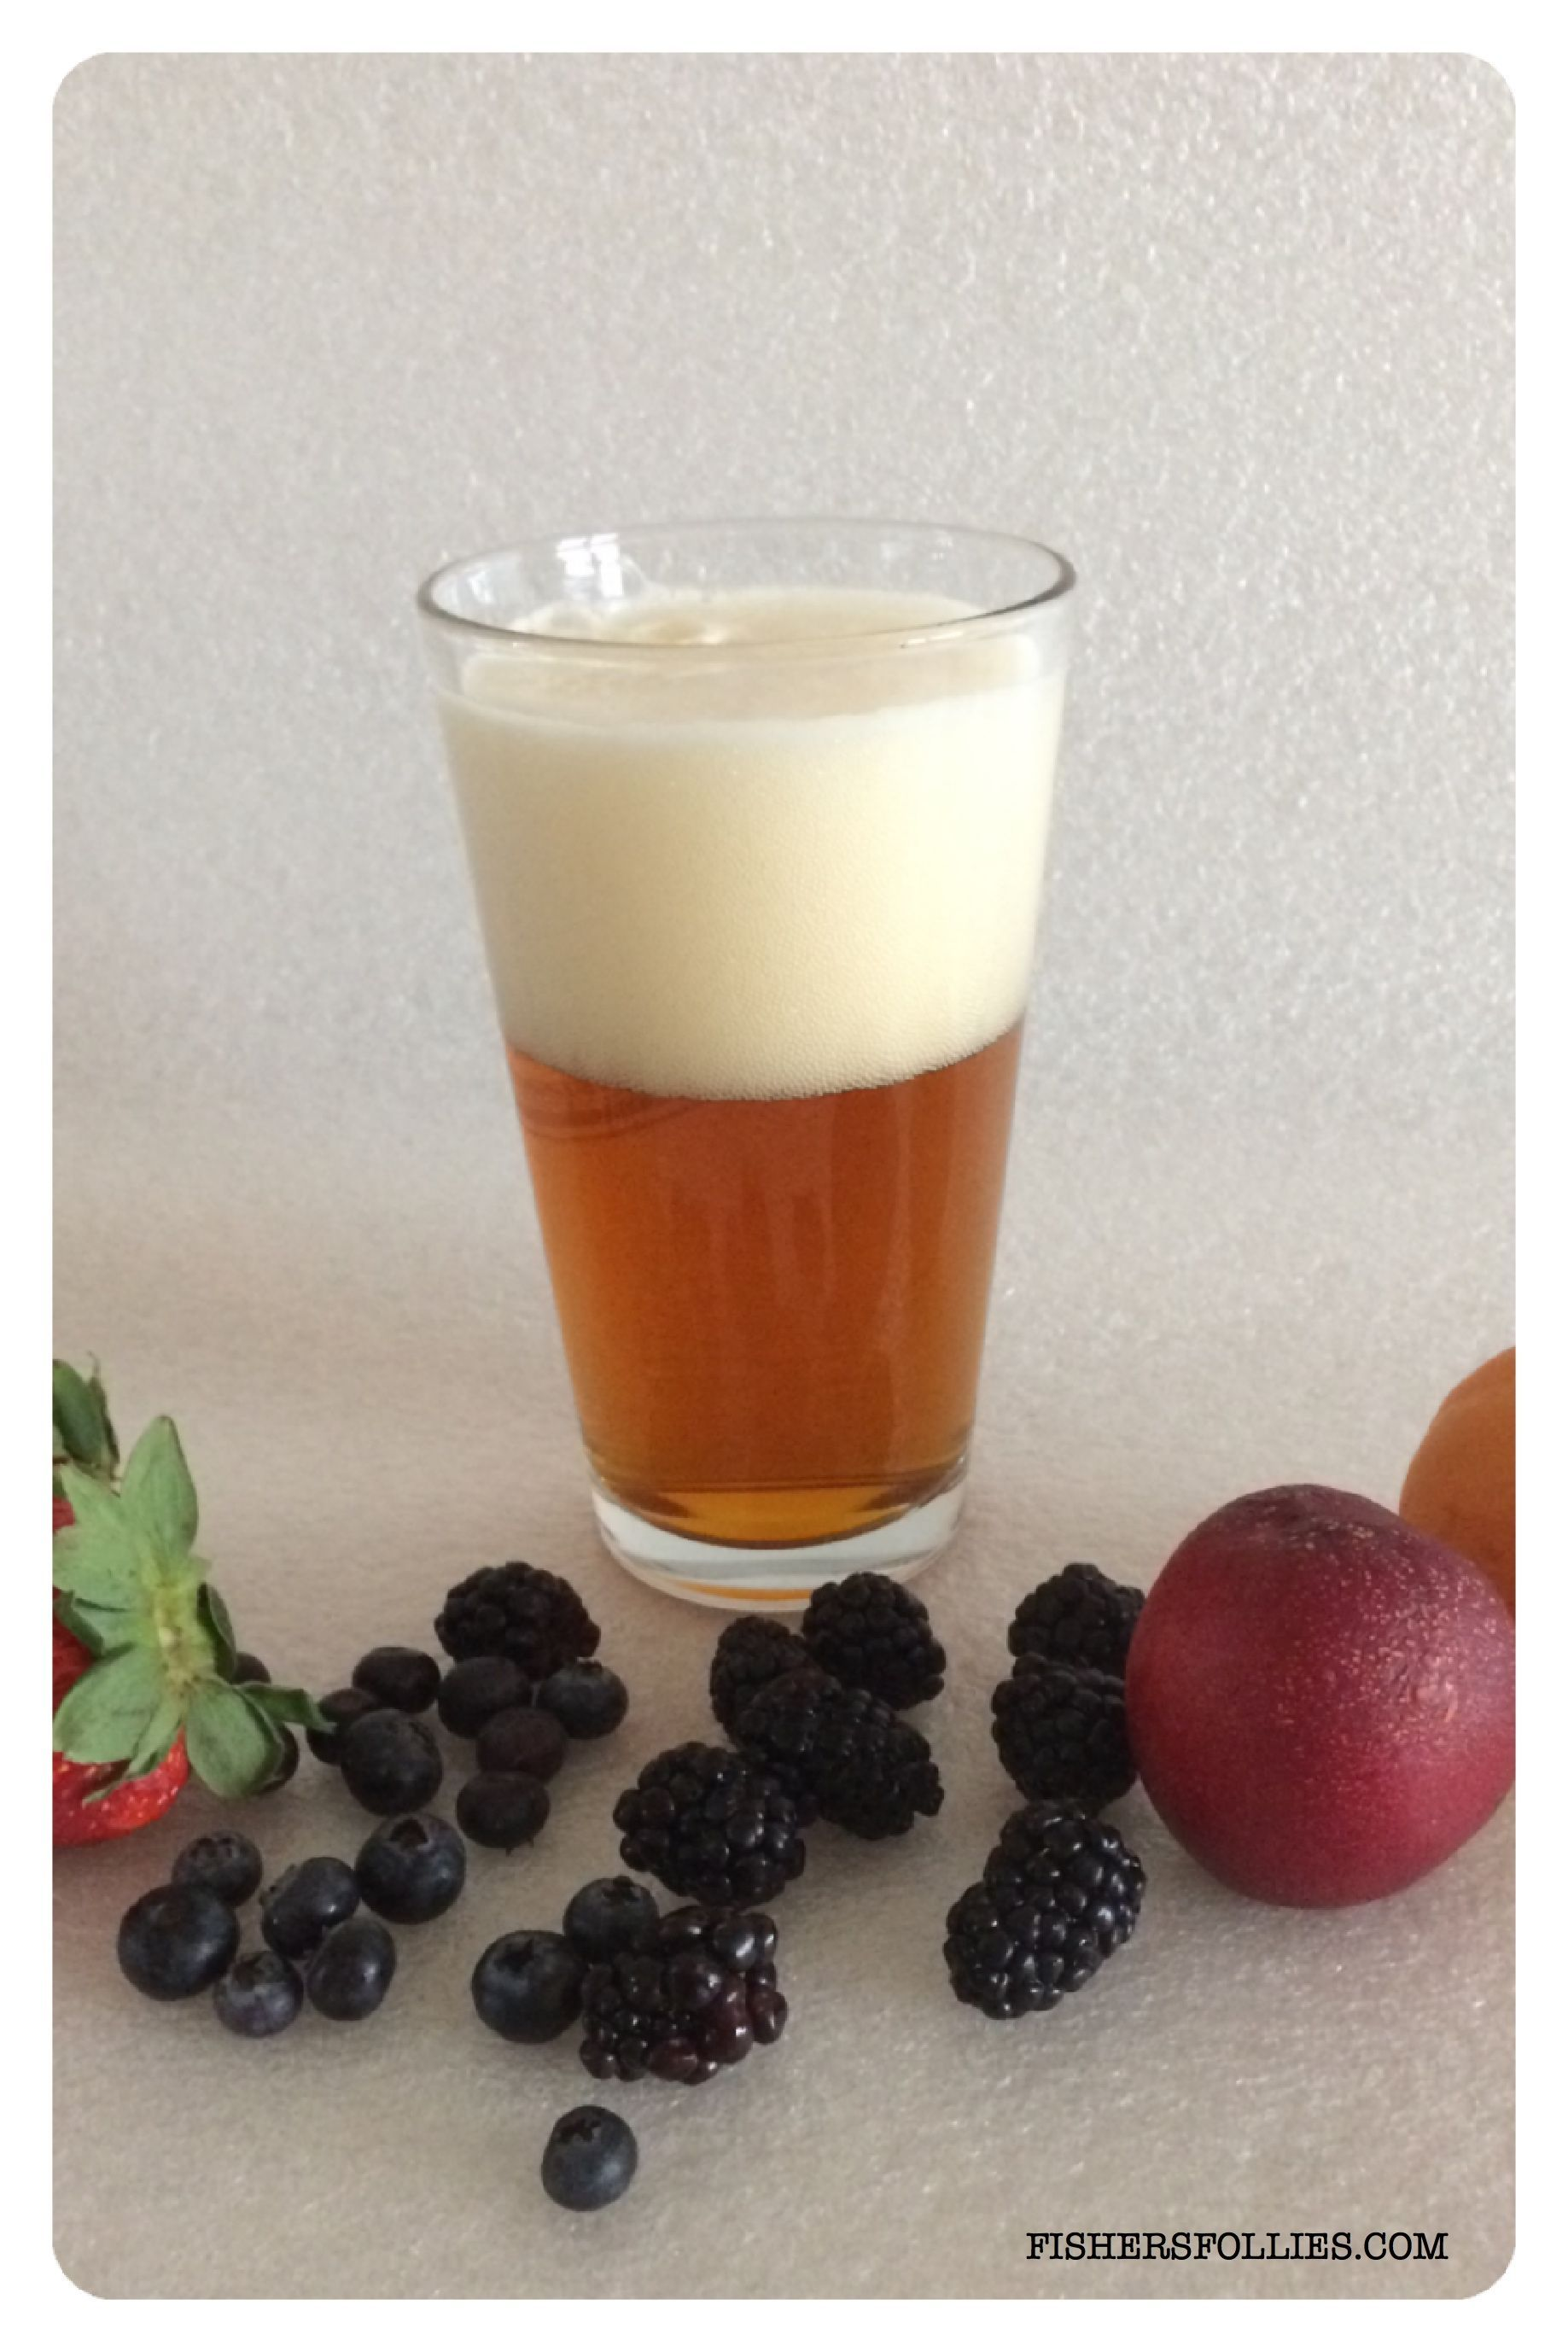 Home Brewers Are You Making A Special Summer Brew Summer Brew